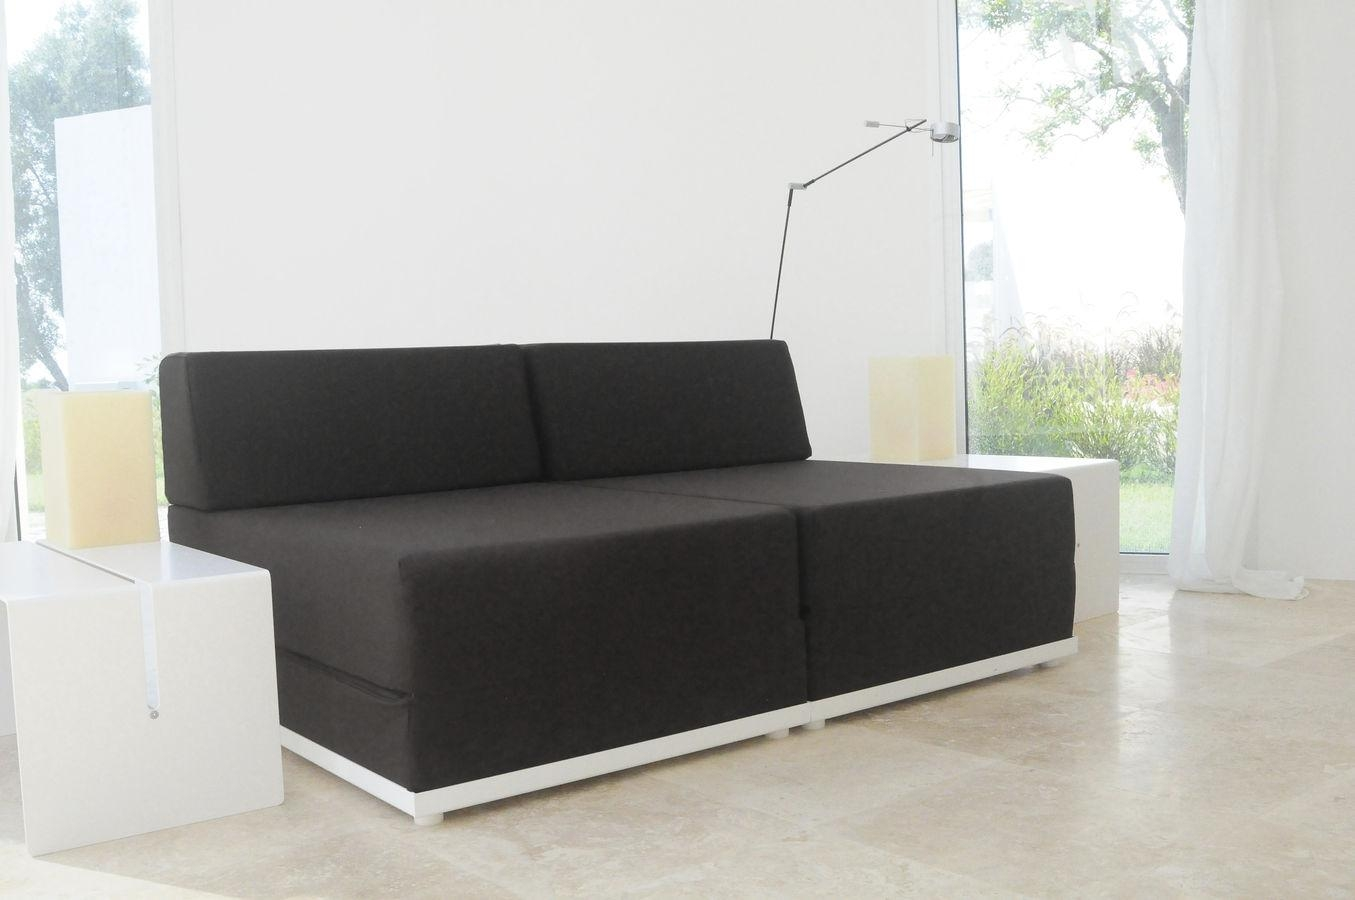 New Carlyle Sofa Bed 93 On Sofa Room Ideas With Carlyle Sofa Bed for Carlyle Sofa Beds